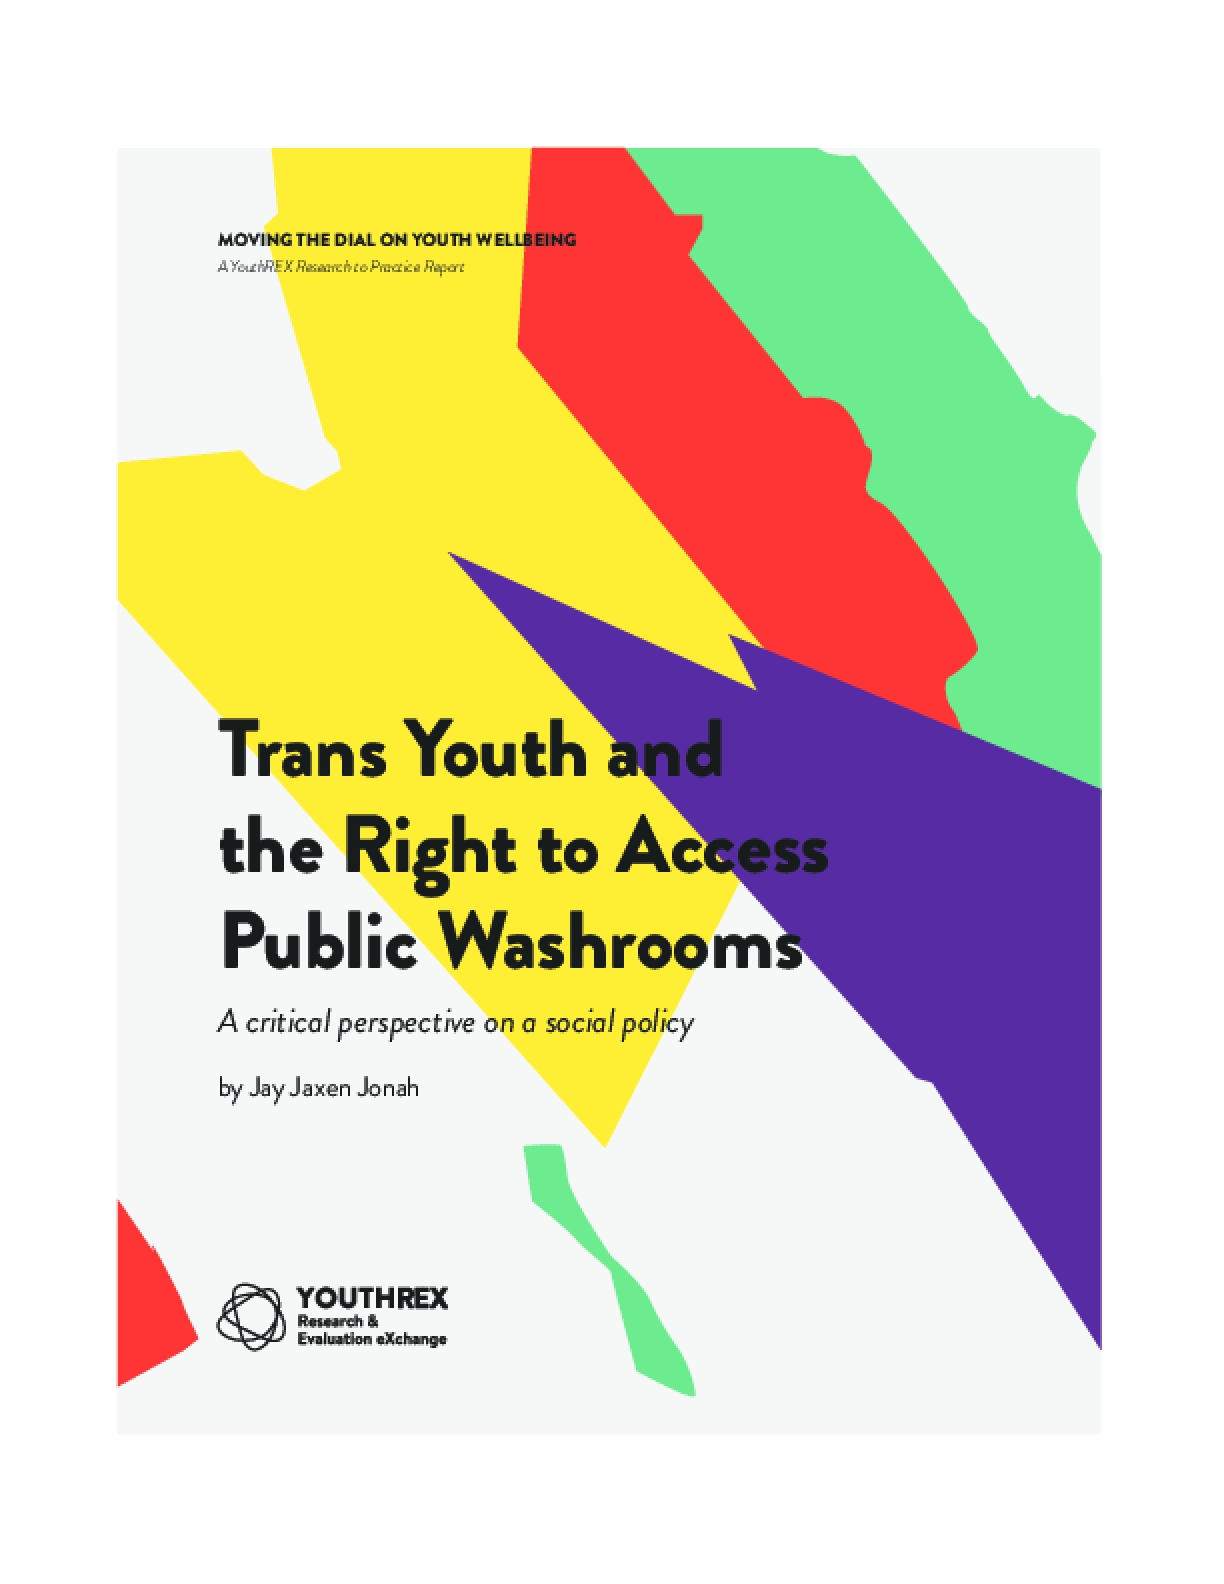 Trans Youth And The Right To Access Public Washrooms: A Critical Perspective On A Social Policy